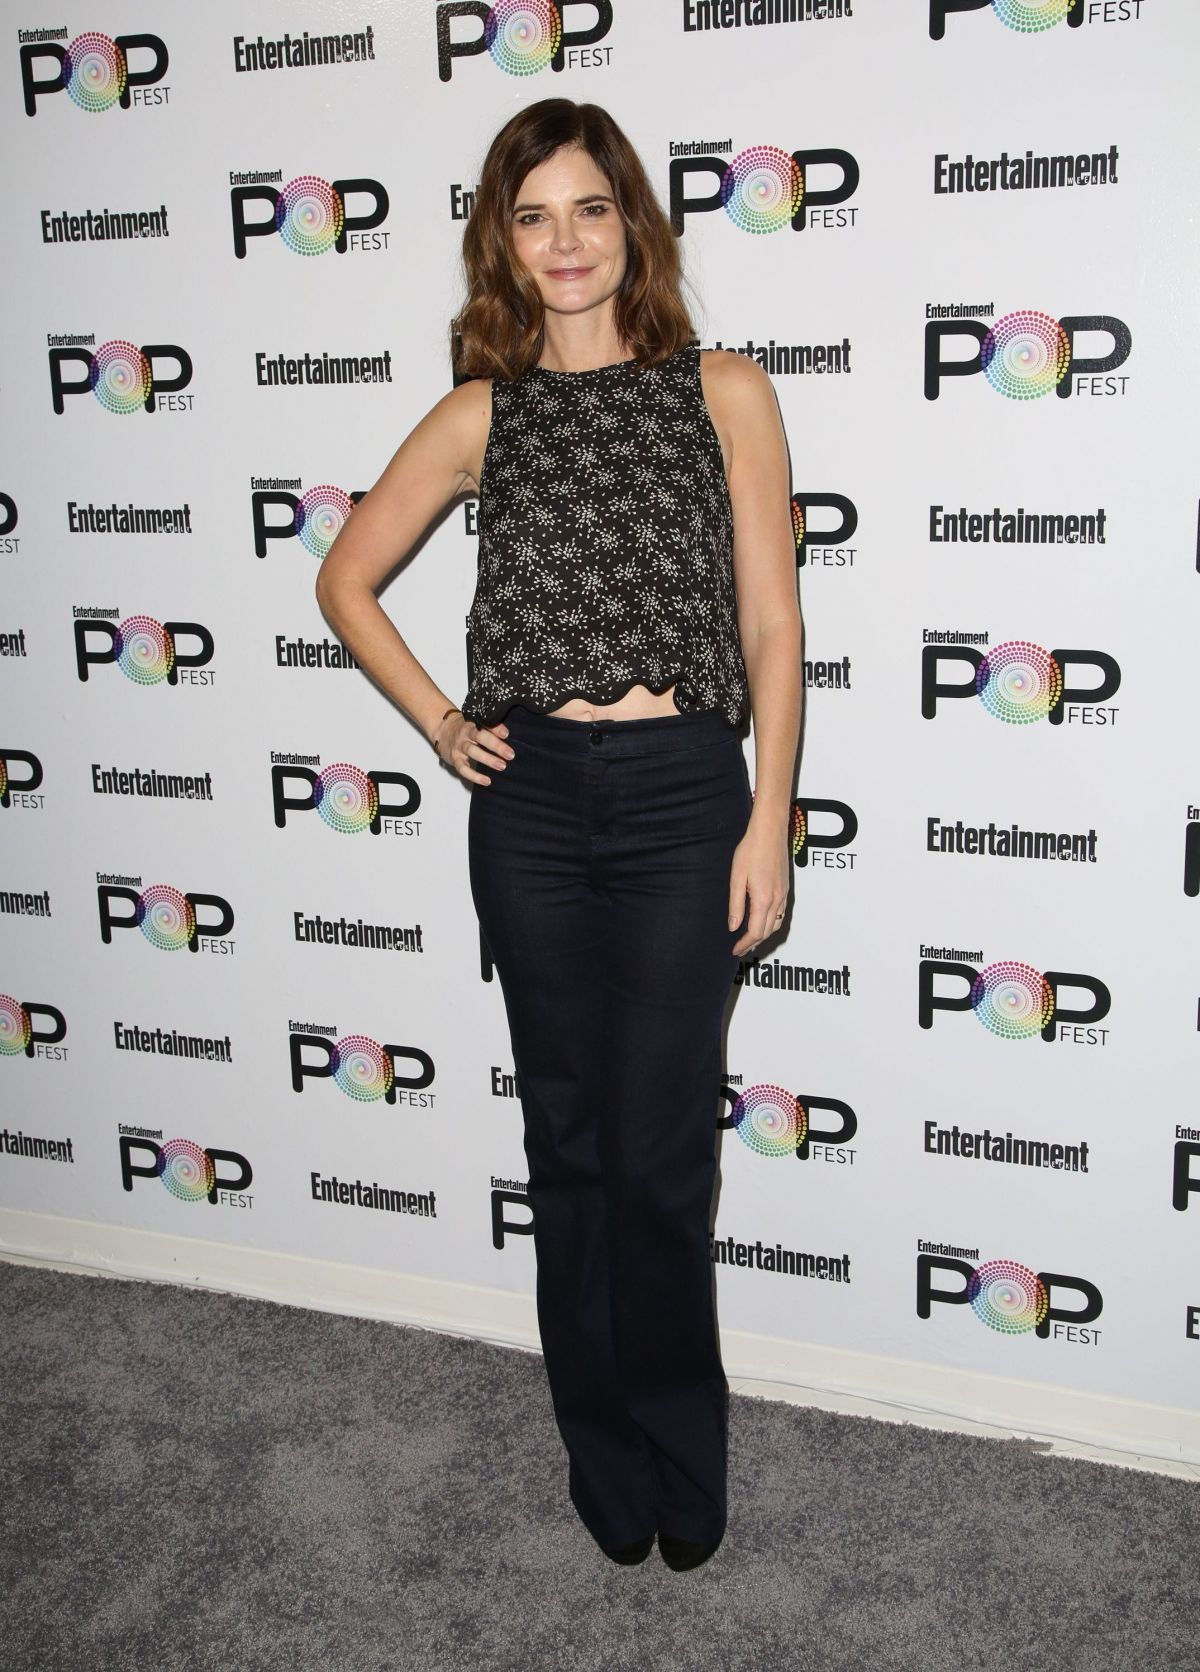 BETSY BRANDT at Entertainment Weekly Popfest in Los Angeles 10/29/2016